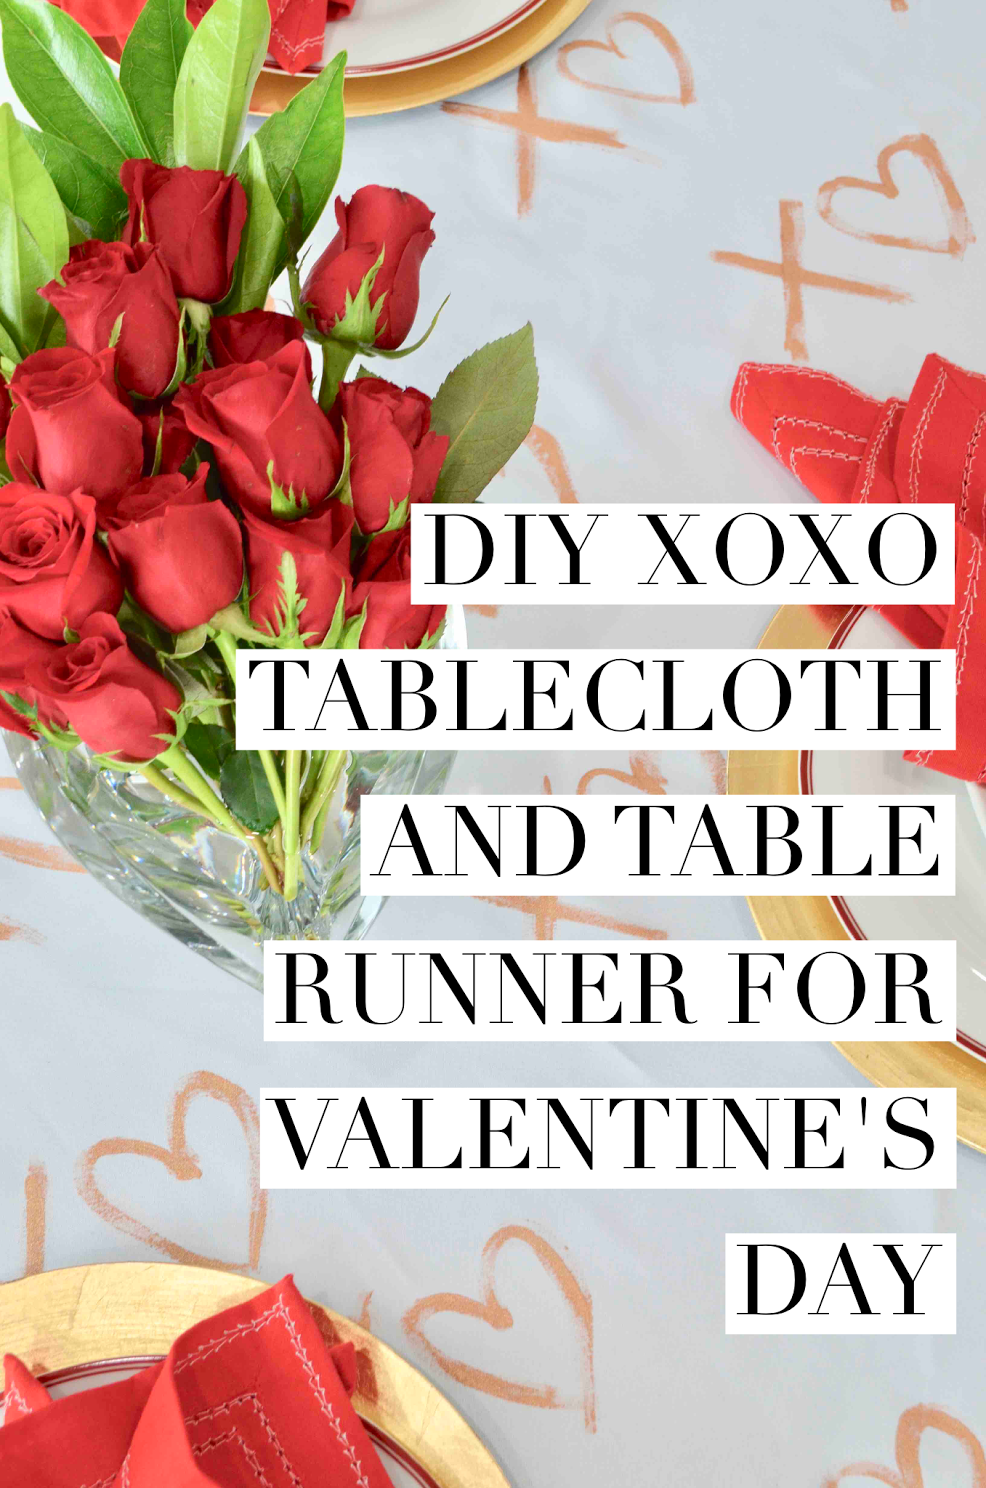 DIY XOXO Tablecloth and Table Runner For Valentine's Day